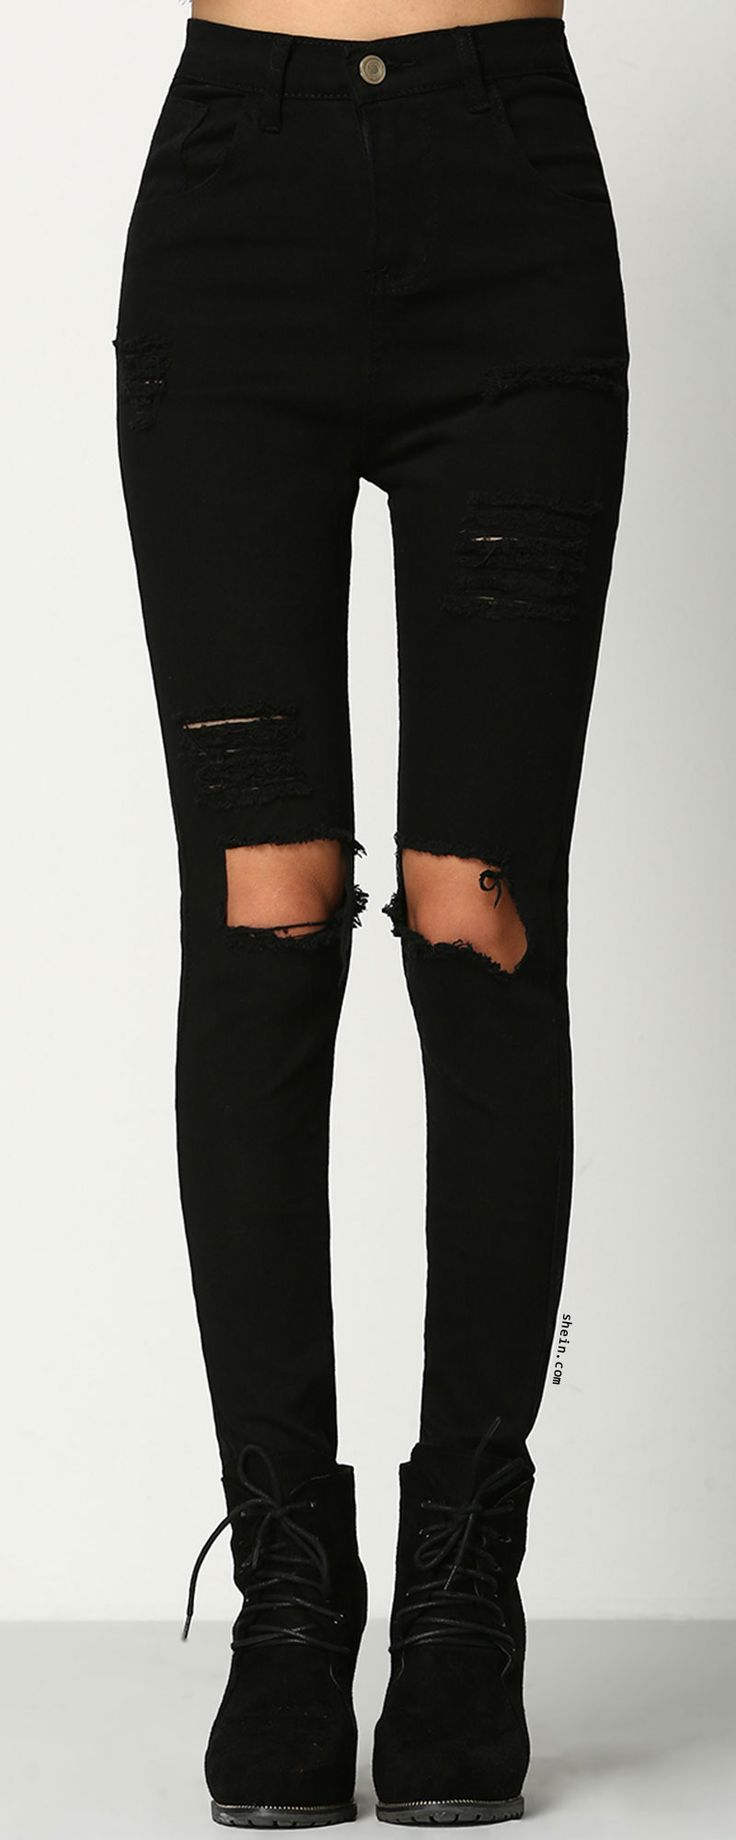 skinny pants outfits pinterest photo - 1